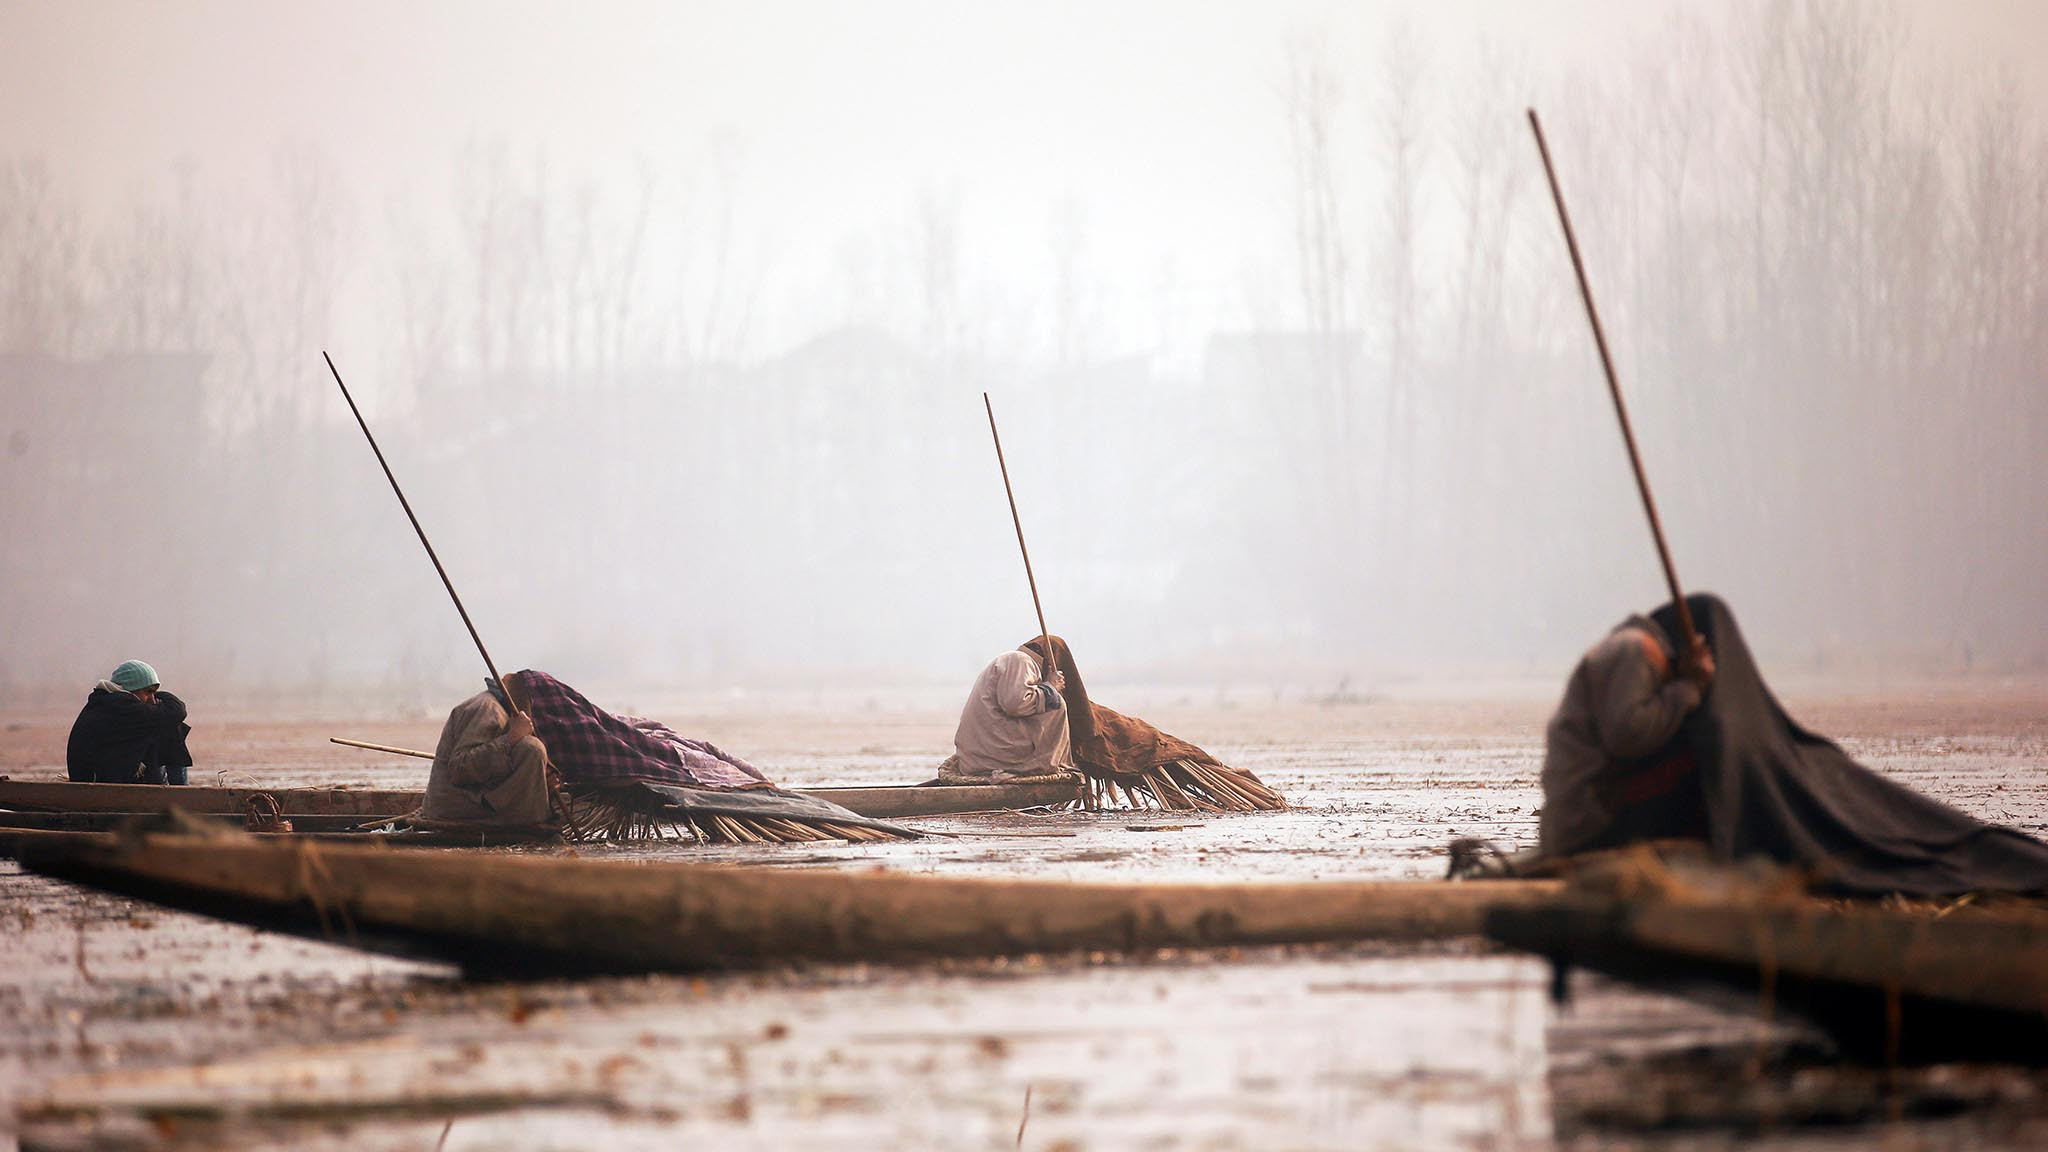 Kashmiri fishermen cover their heads and part of their boats with blankets and straw as they wait to catch fish in the waters of the Anchar Lake on a cold day in Srinagar